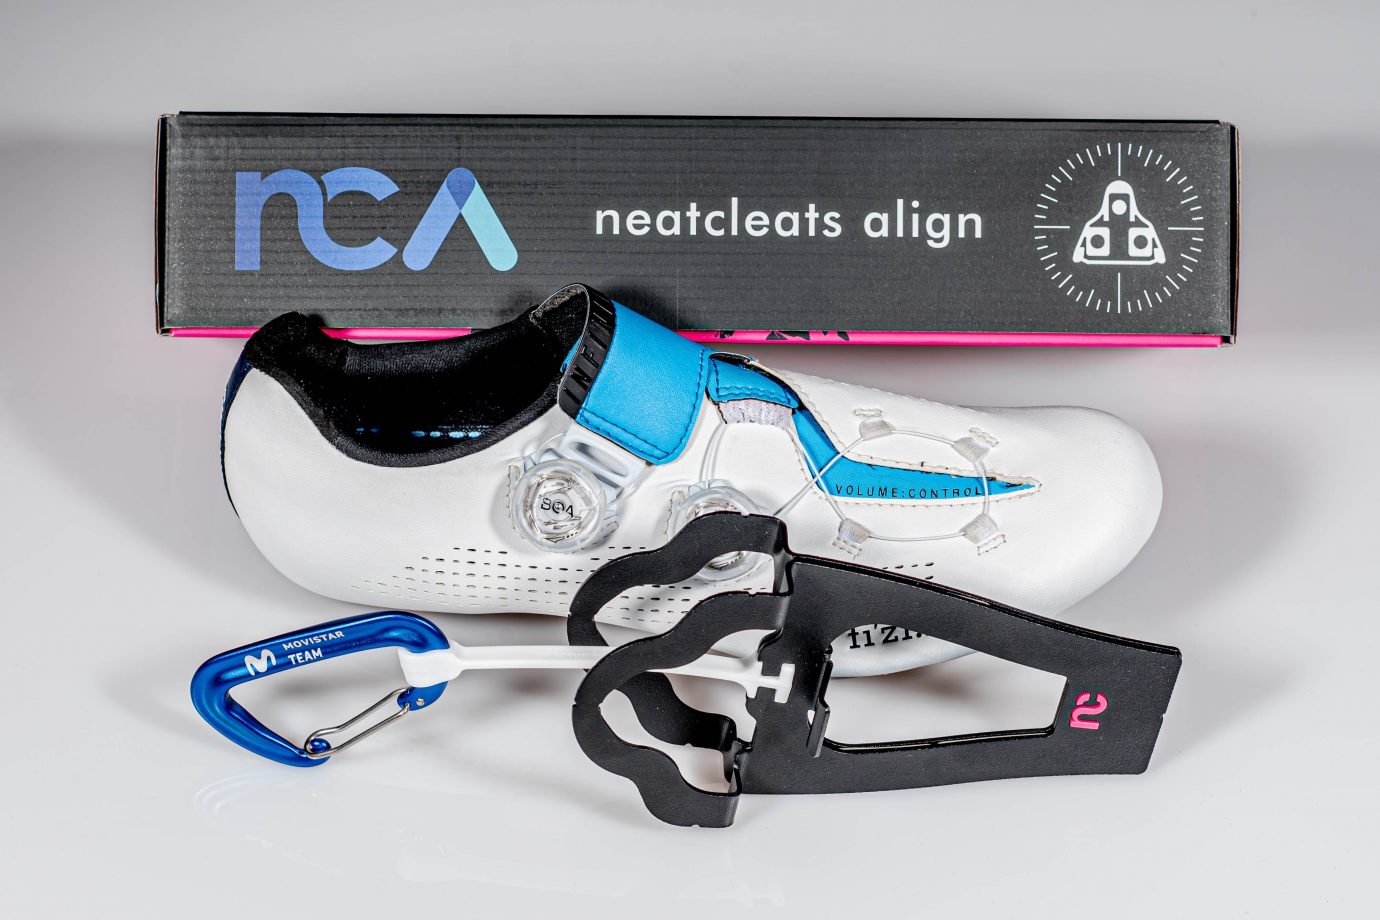 Imagen de la noticia 'NeatCleats to keep Movistar Team's equipment tidier and cleaner'